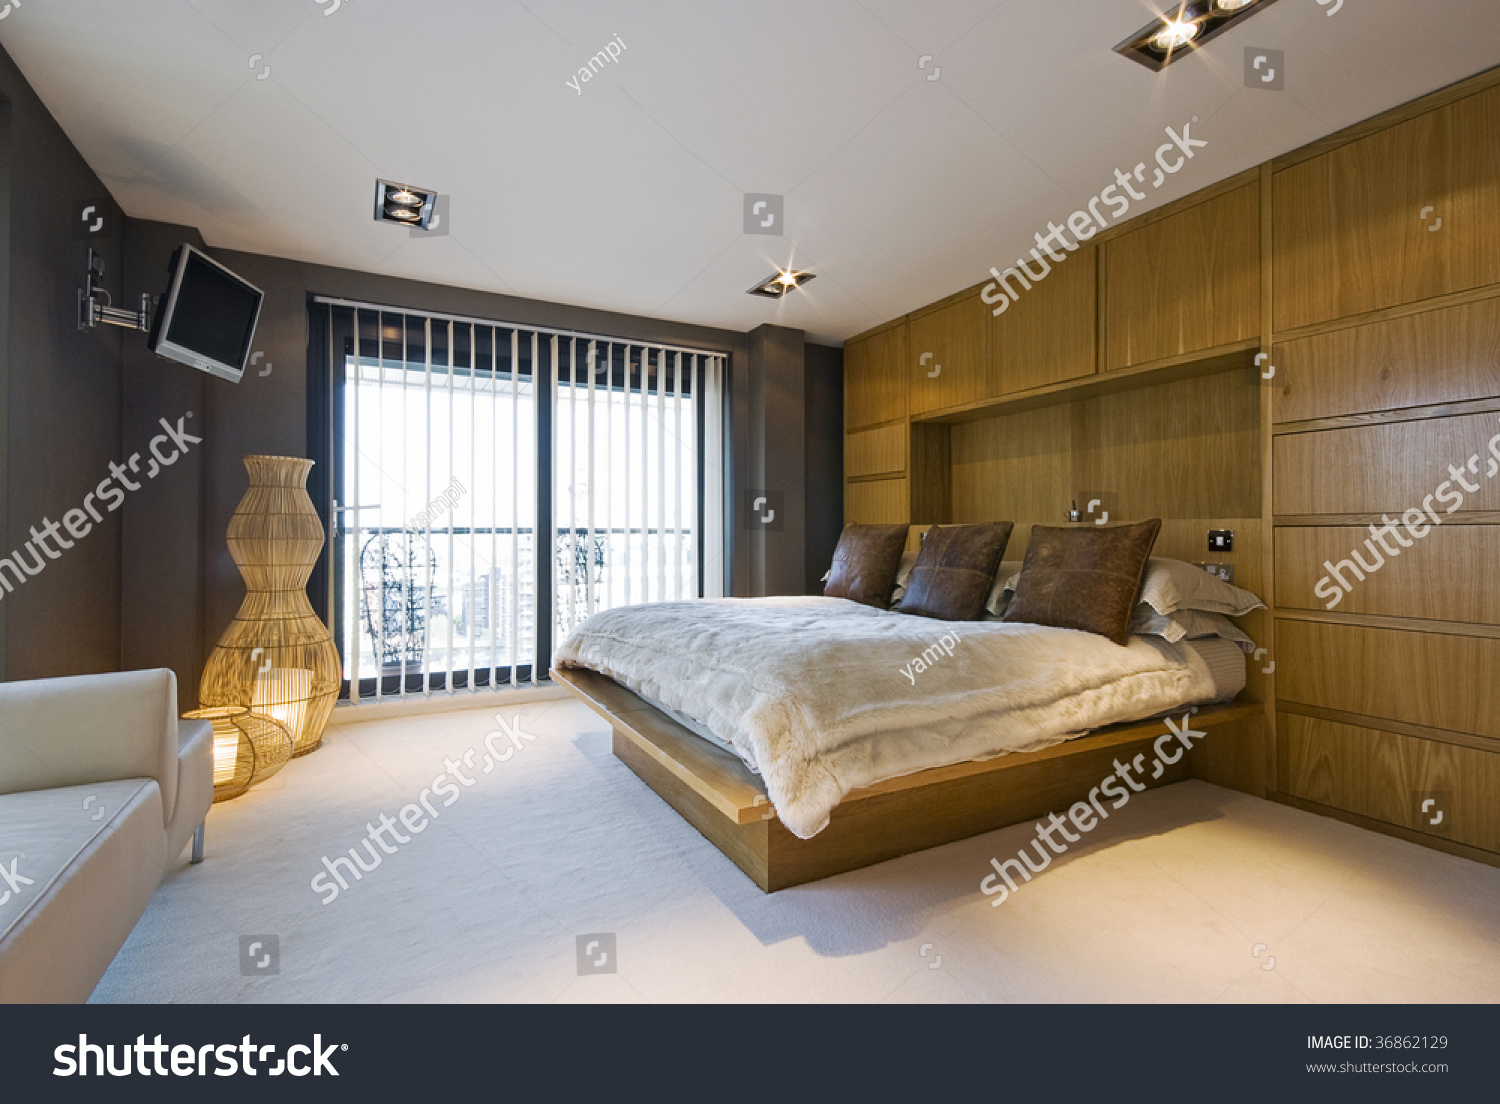 How High To Mount Tv On Wall In Bedroom Stunning Luxury Bedroom With A King Size Bed Wall Mount